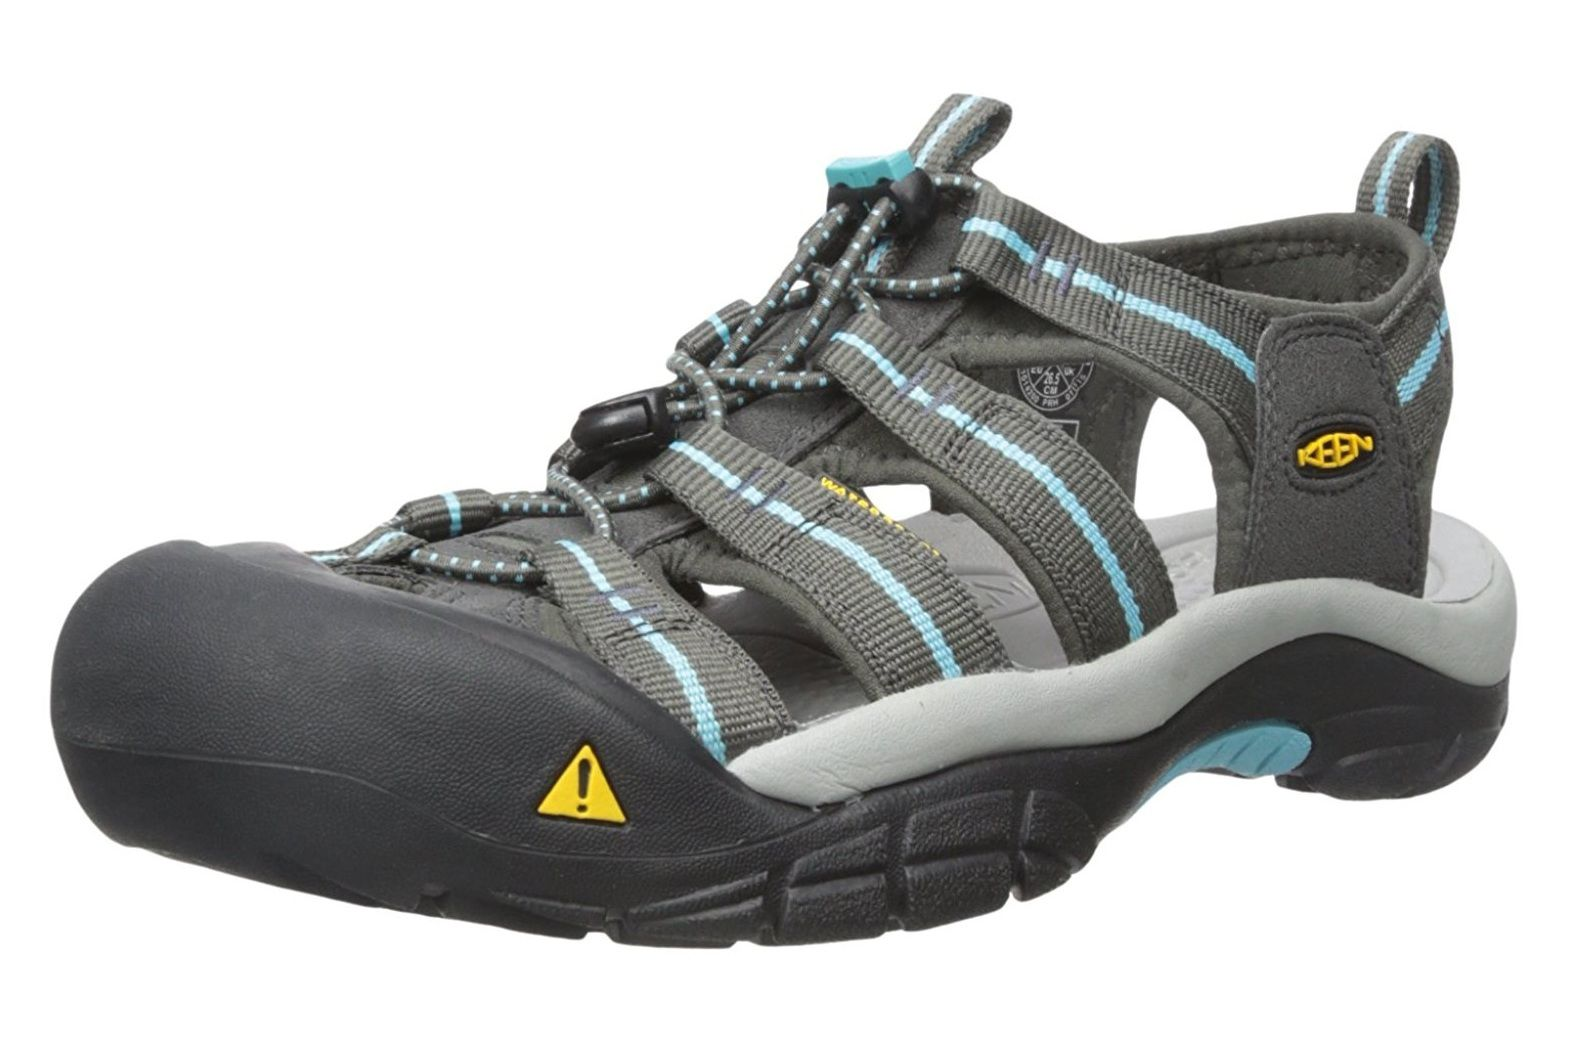 cba4174f4d5b The 9 Best Walking Sandals of 2019